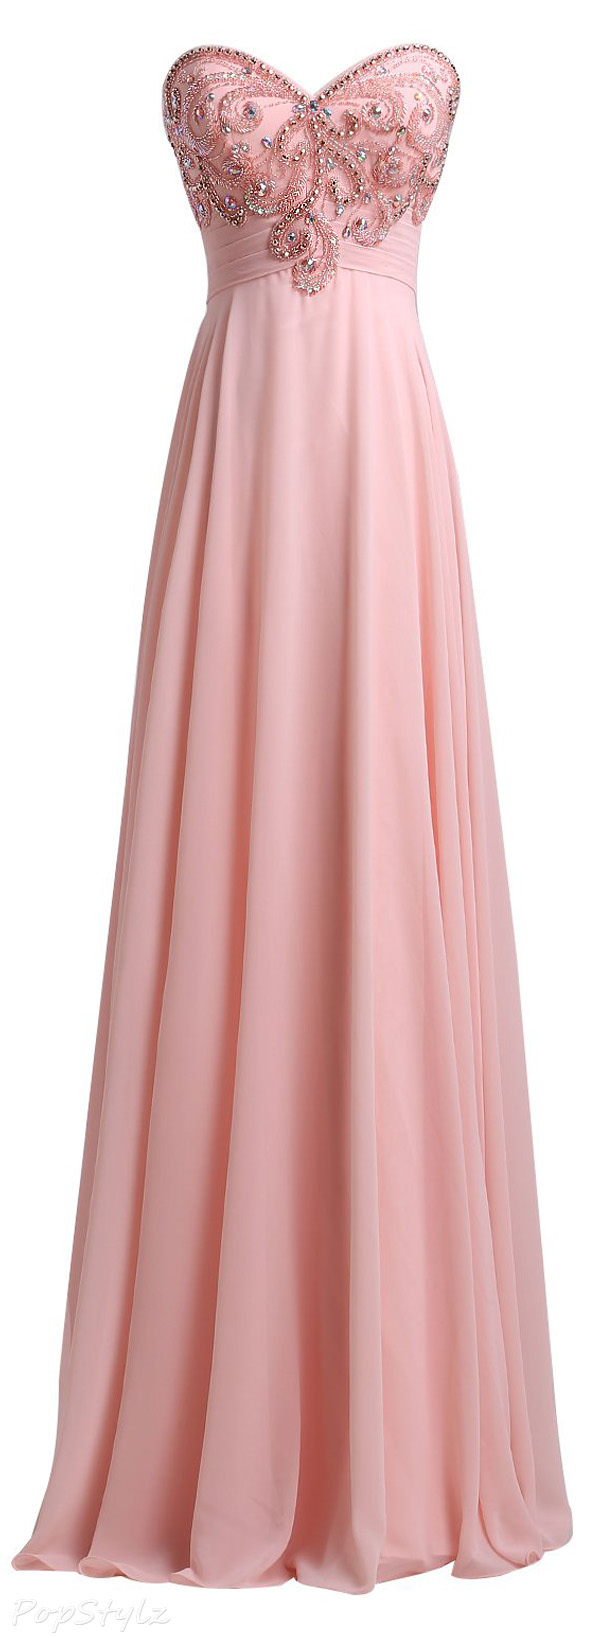 SeasonMall Chiffon A Line Sweetheart Evening Dress